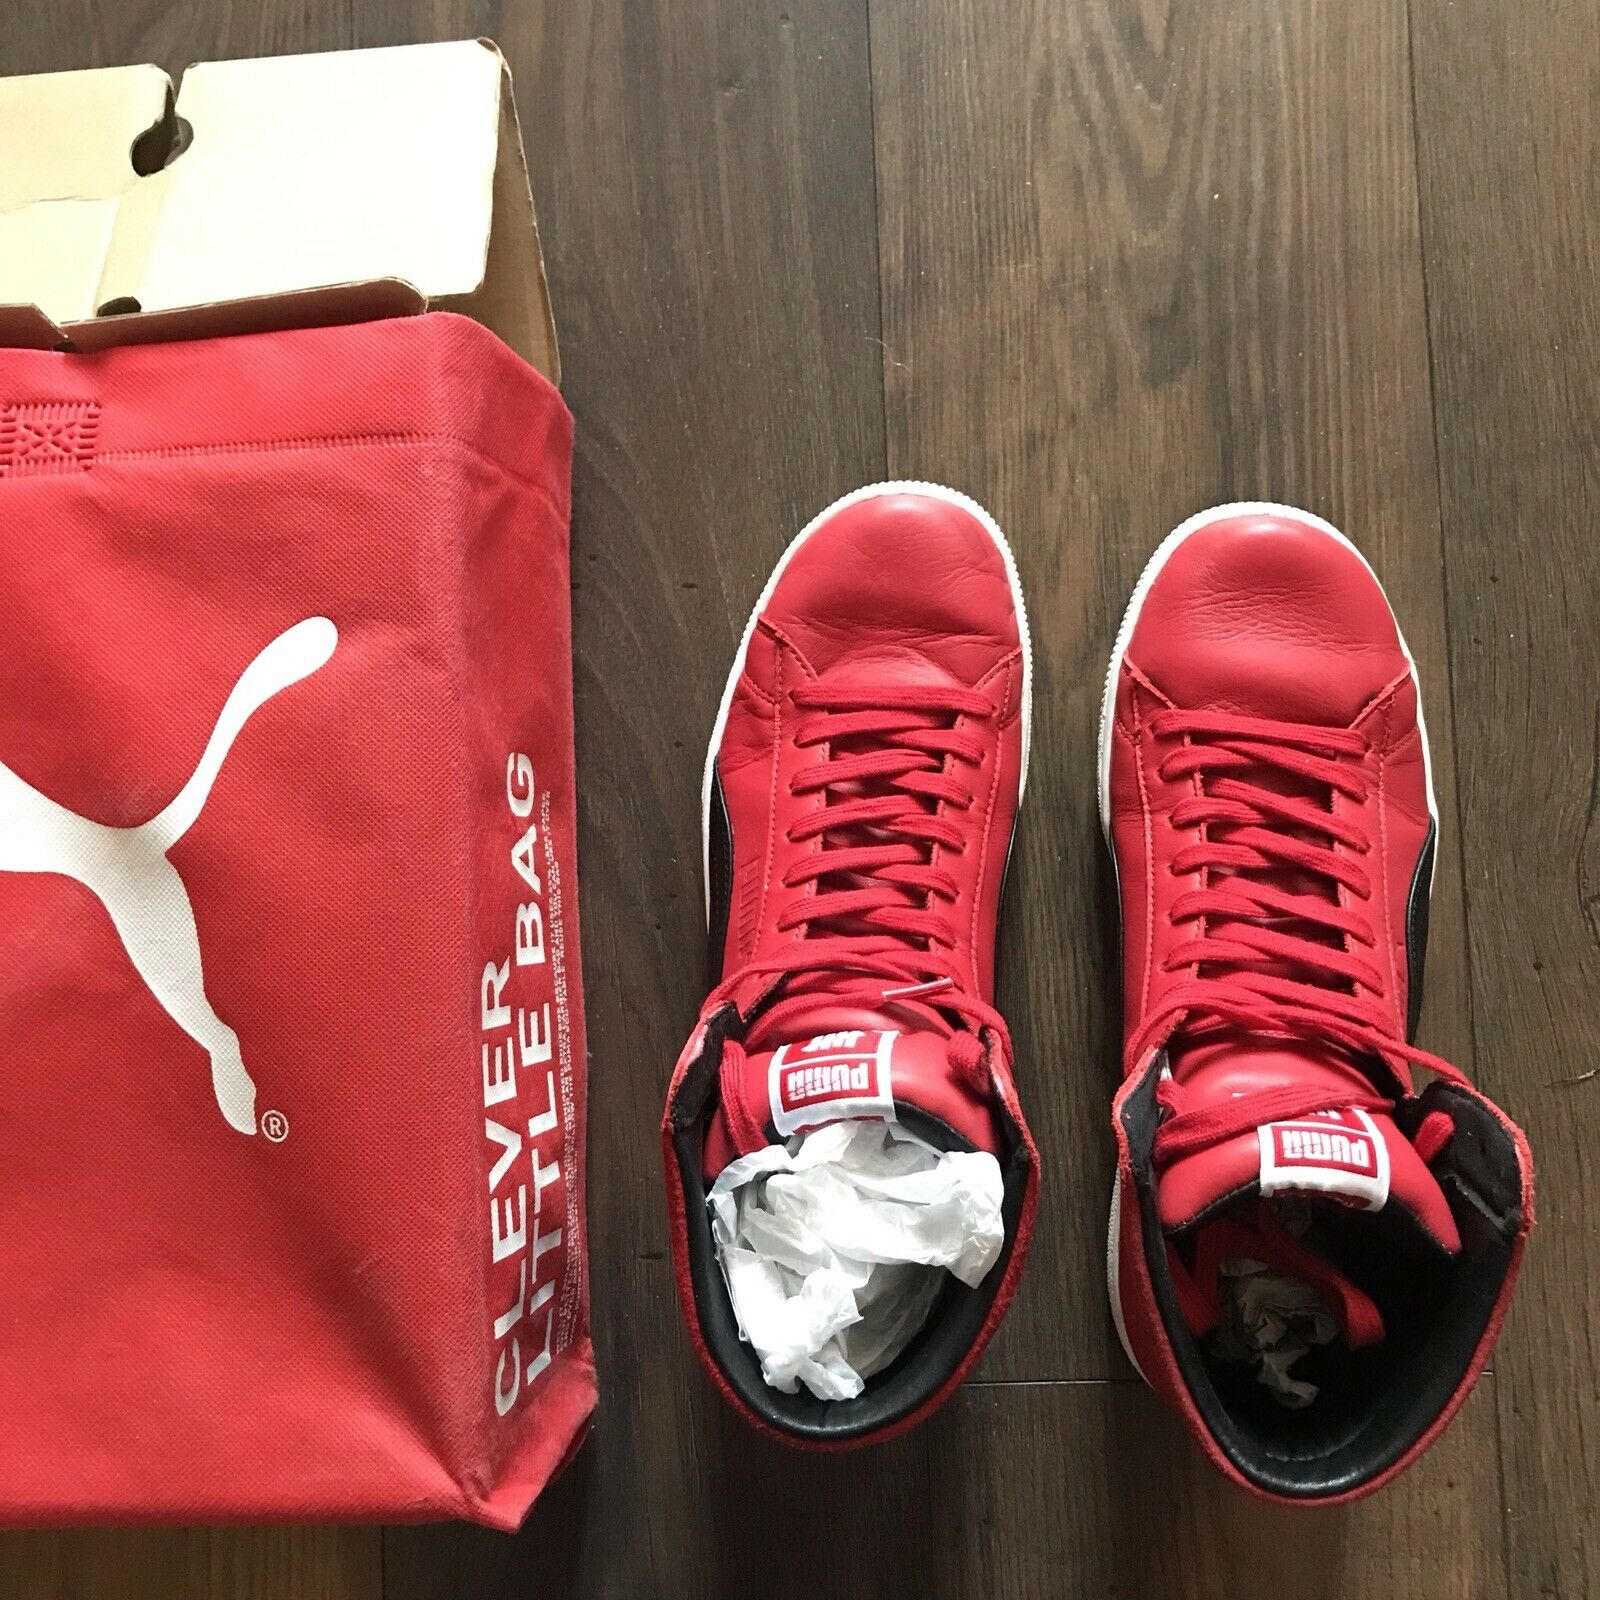 PUMA X X X UNDEFEATED Snake Skin - Size 10 529bed